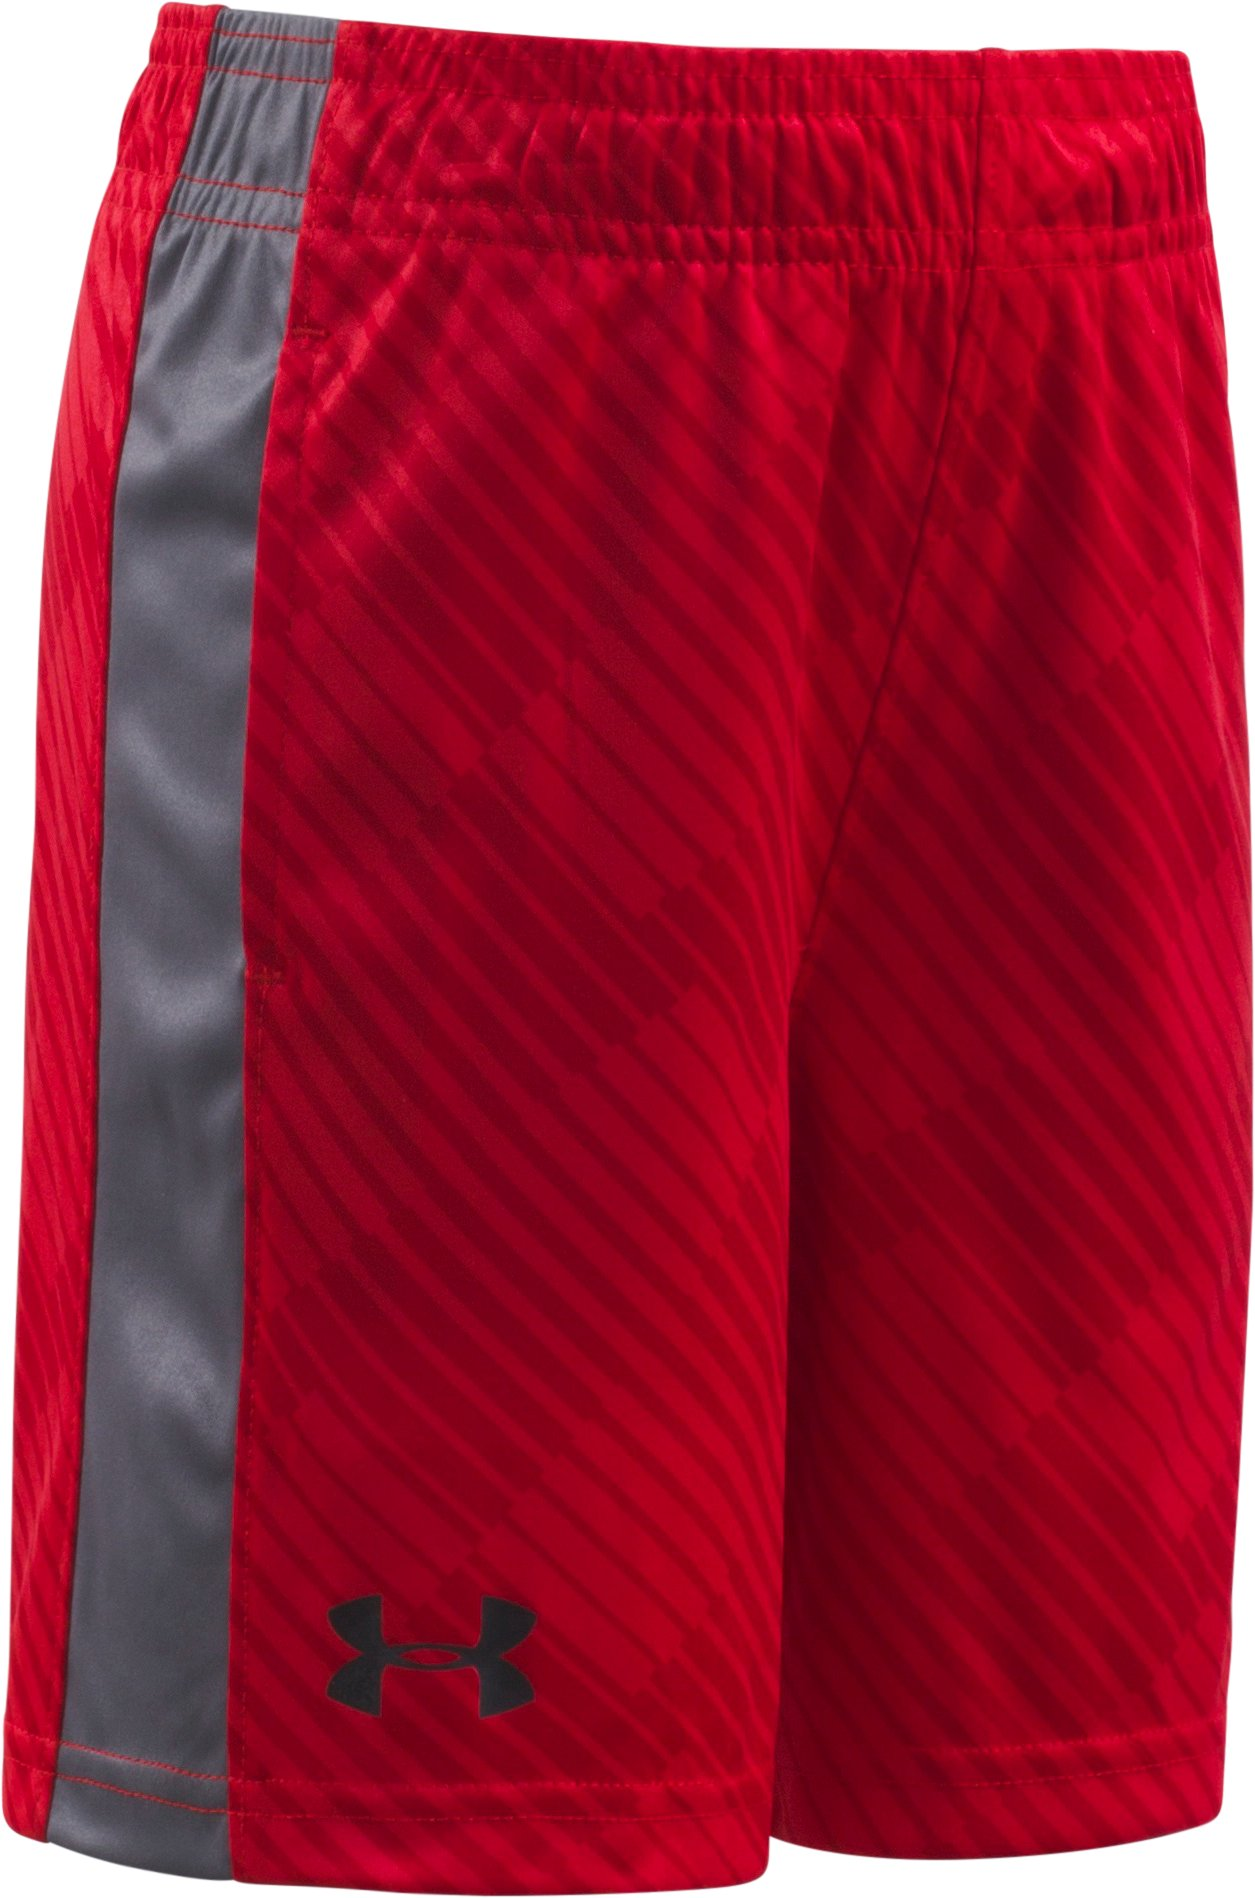 Boys' Toddler UA Tilt Shift Eliminator Shorts, Red, Laydown